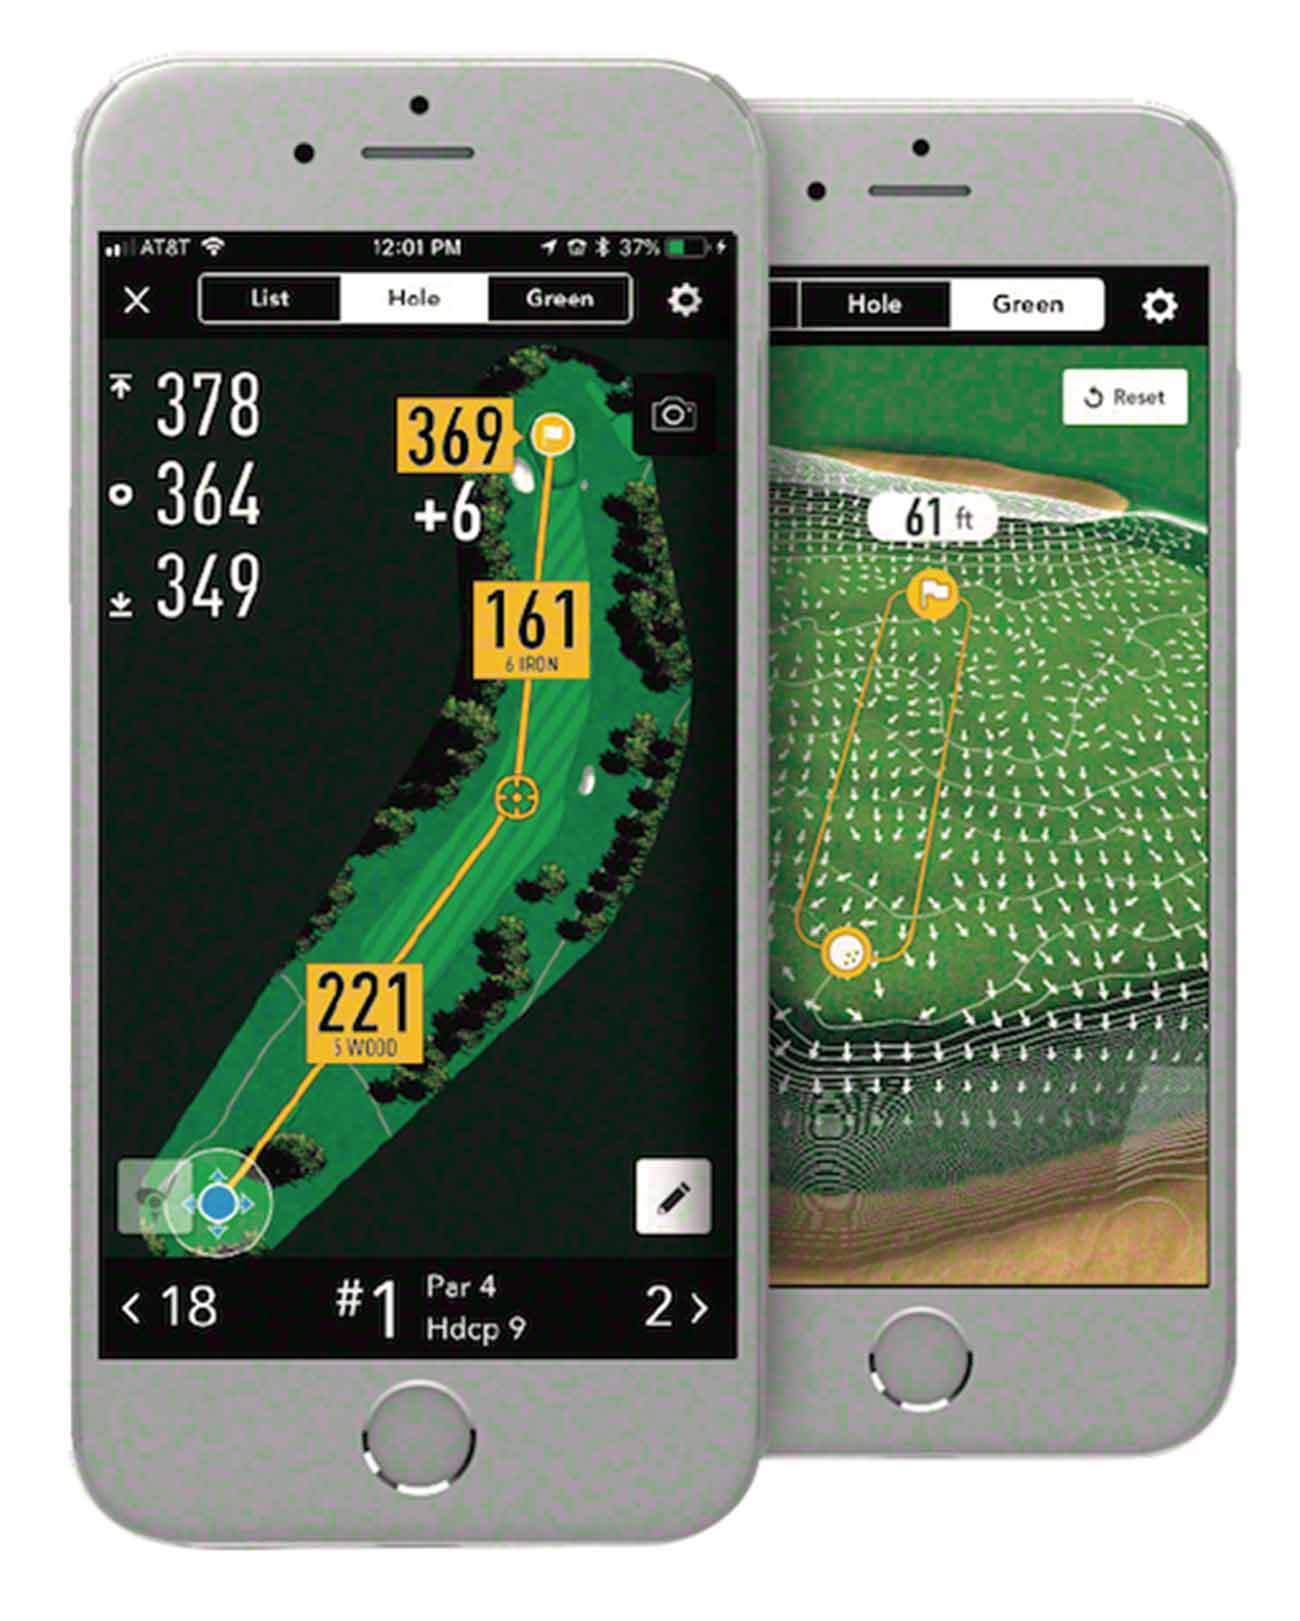 Four golf apps that take 'playing on your phone' to the next